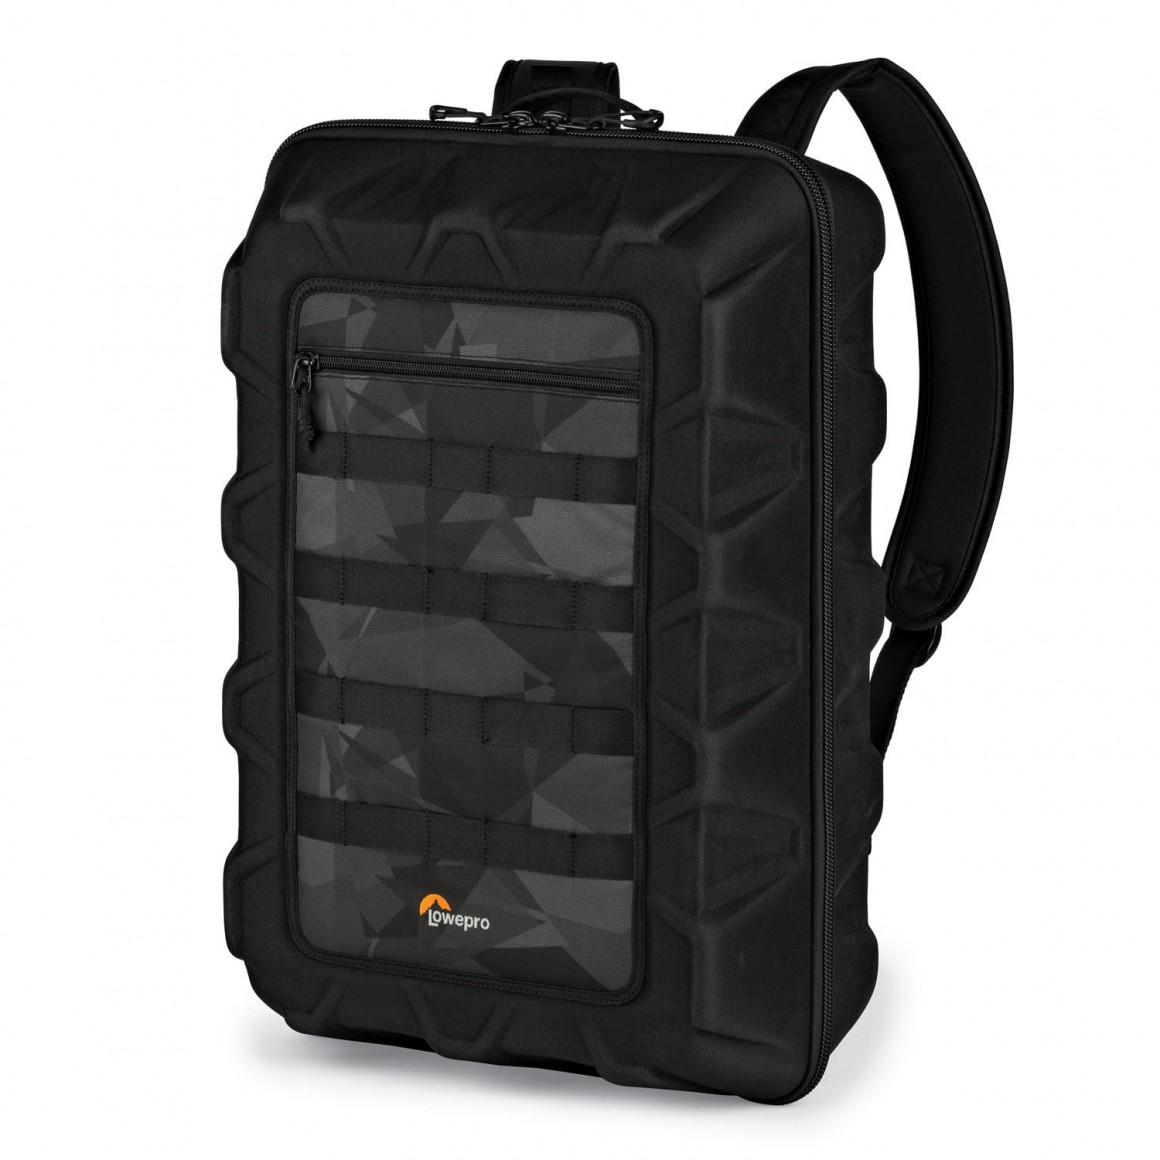 Рюкзак для квадрокоптера Lowepro DroneGuard CS 400, черный